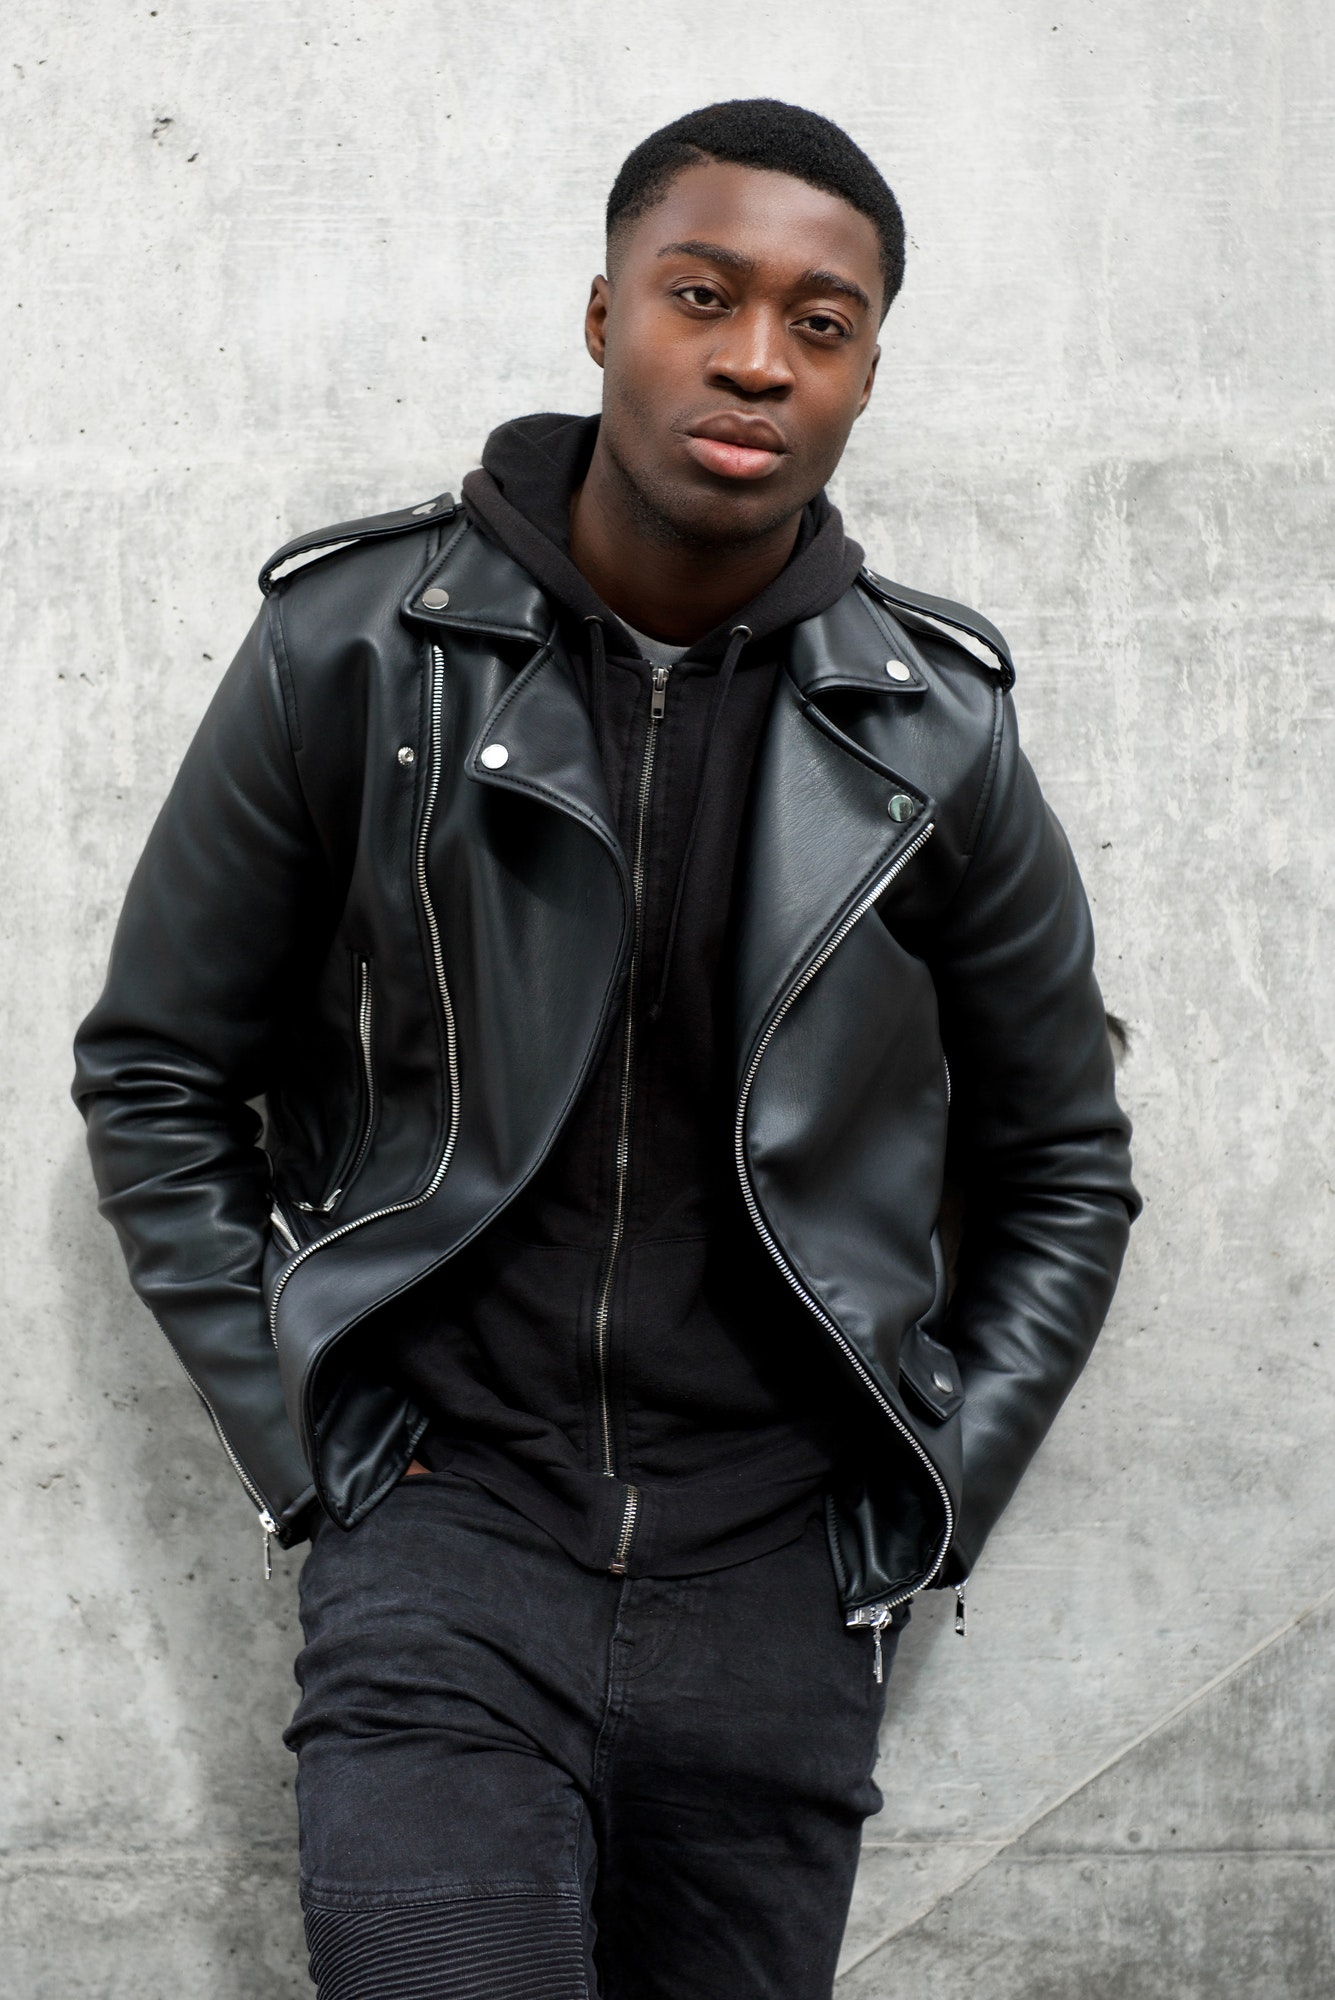 cool young black man with leather jacket